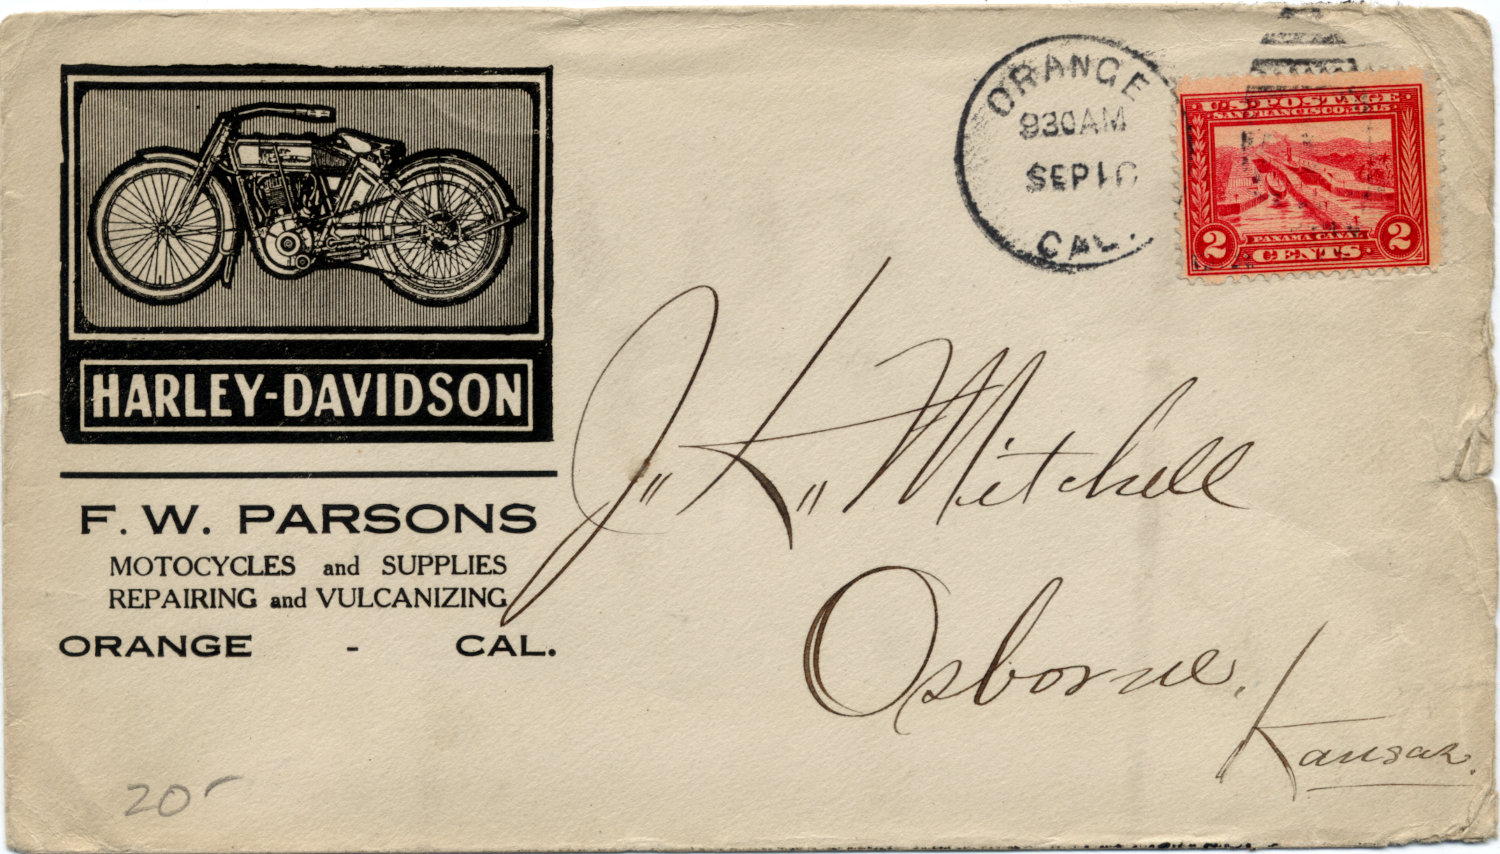 [Nice Illustrated Cover from a Harley-Davidson Motorcycle Dealer]